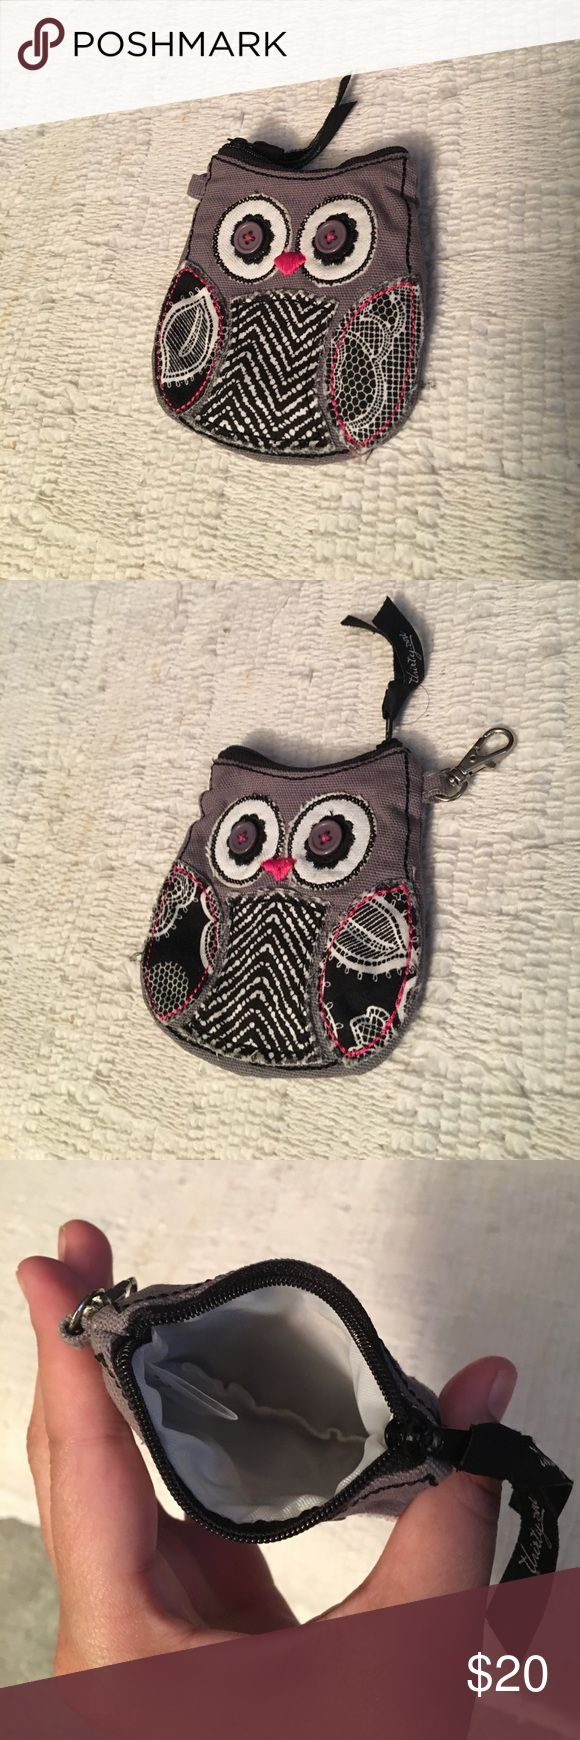 Thirty-One Owl Coin Purse! Super cute owl coin purse! It features the owl design on both sides! It was barely used and the condition is excellent! No stains! thirty-one Bags Wallets